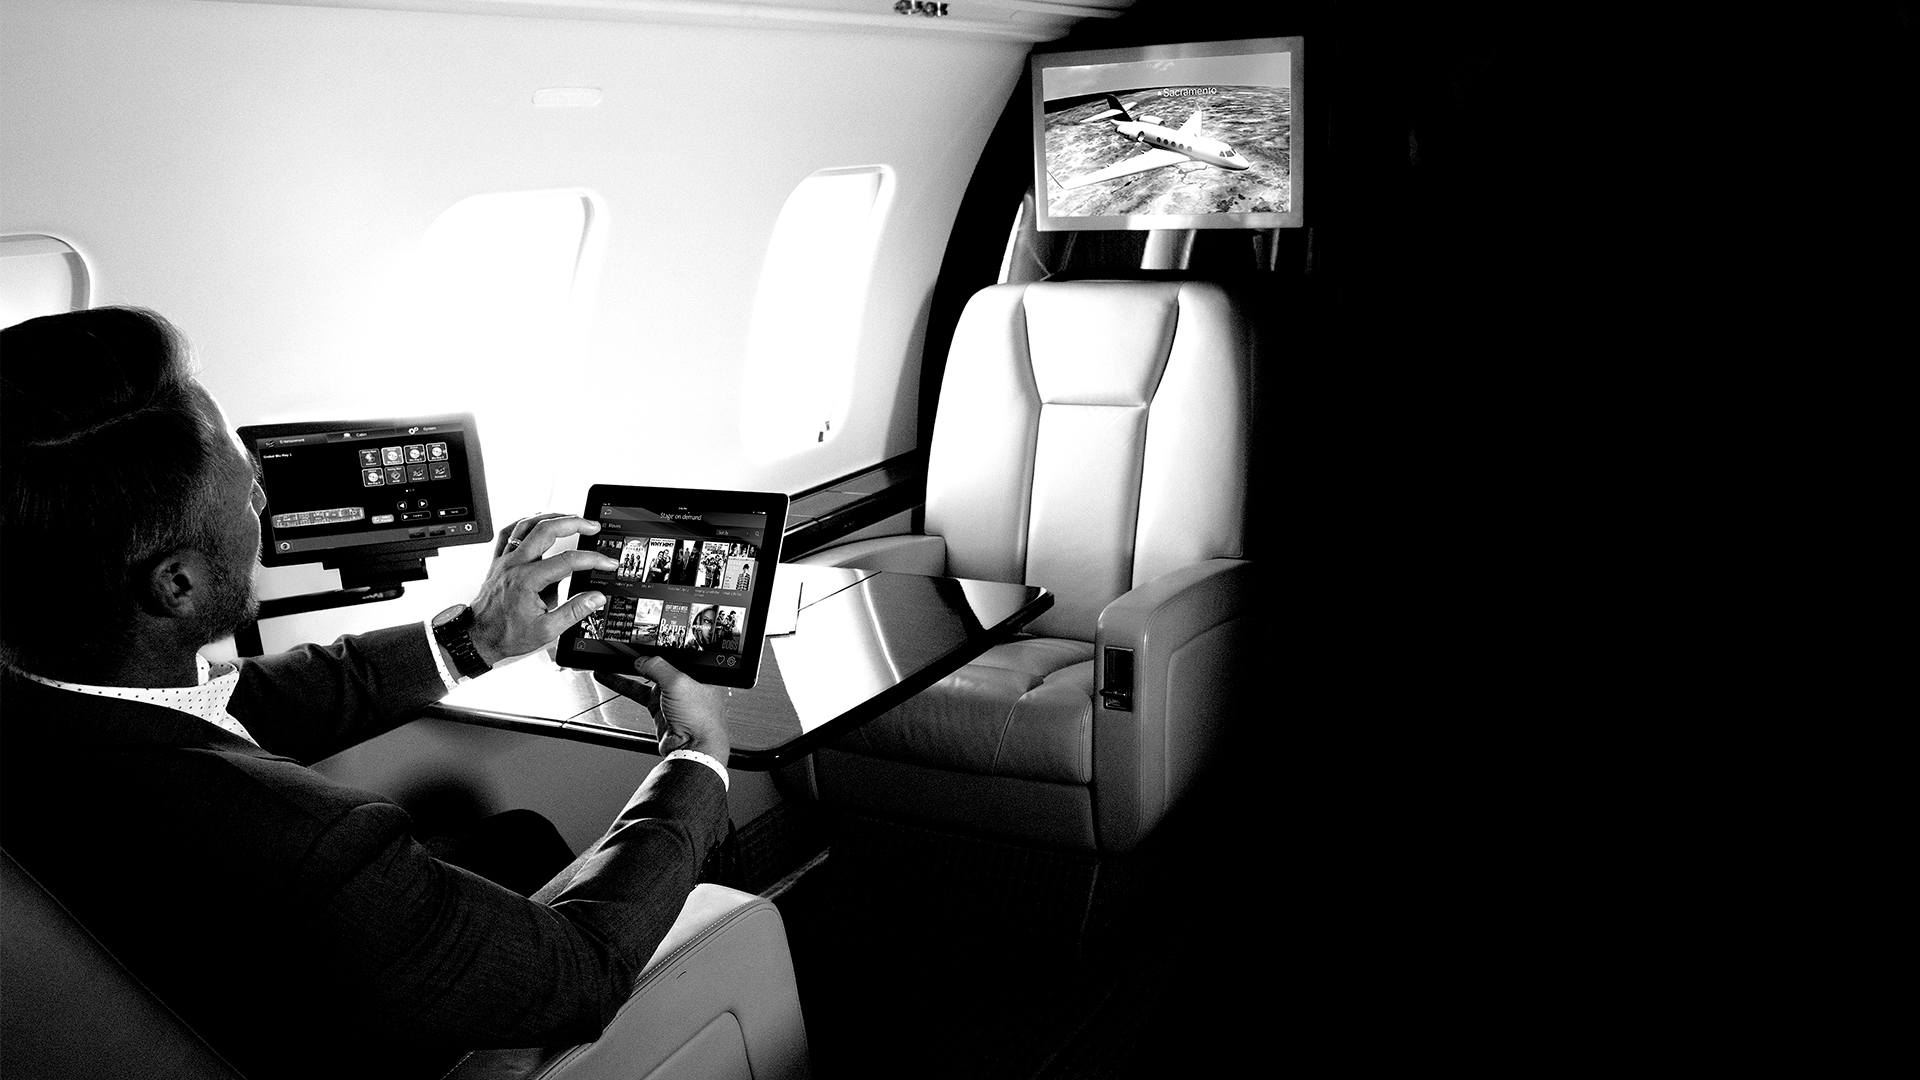 Man watching TV in the cabin of a business jet